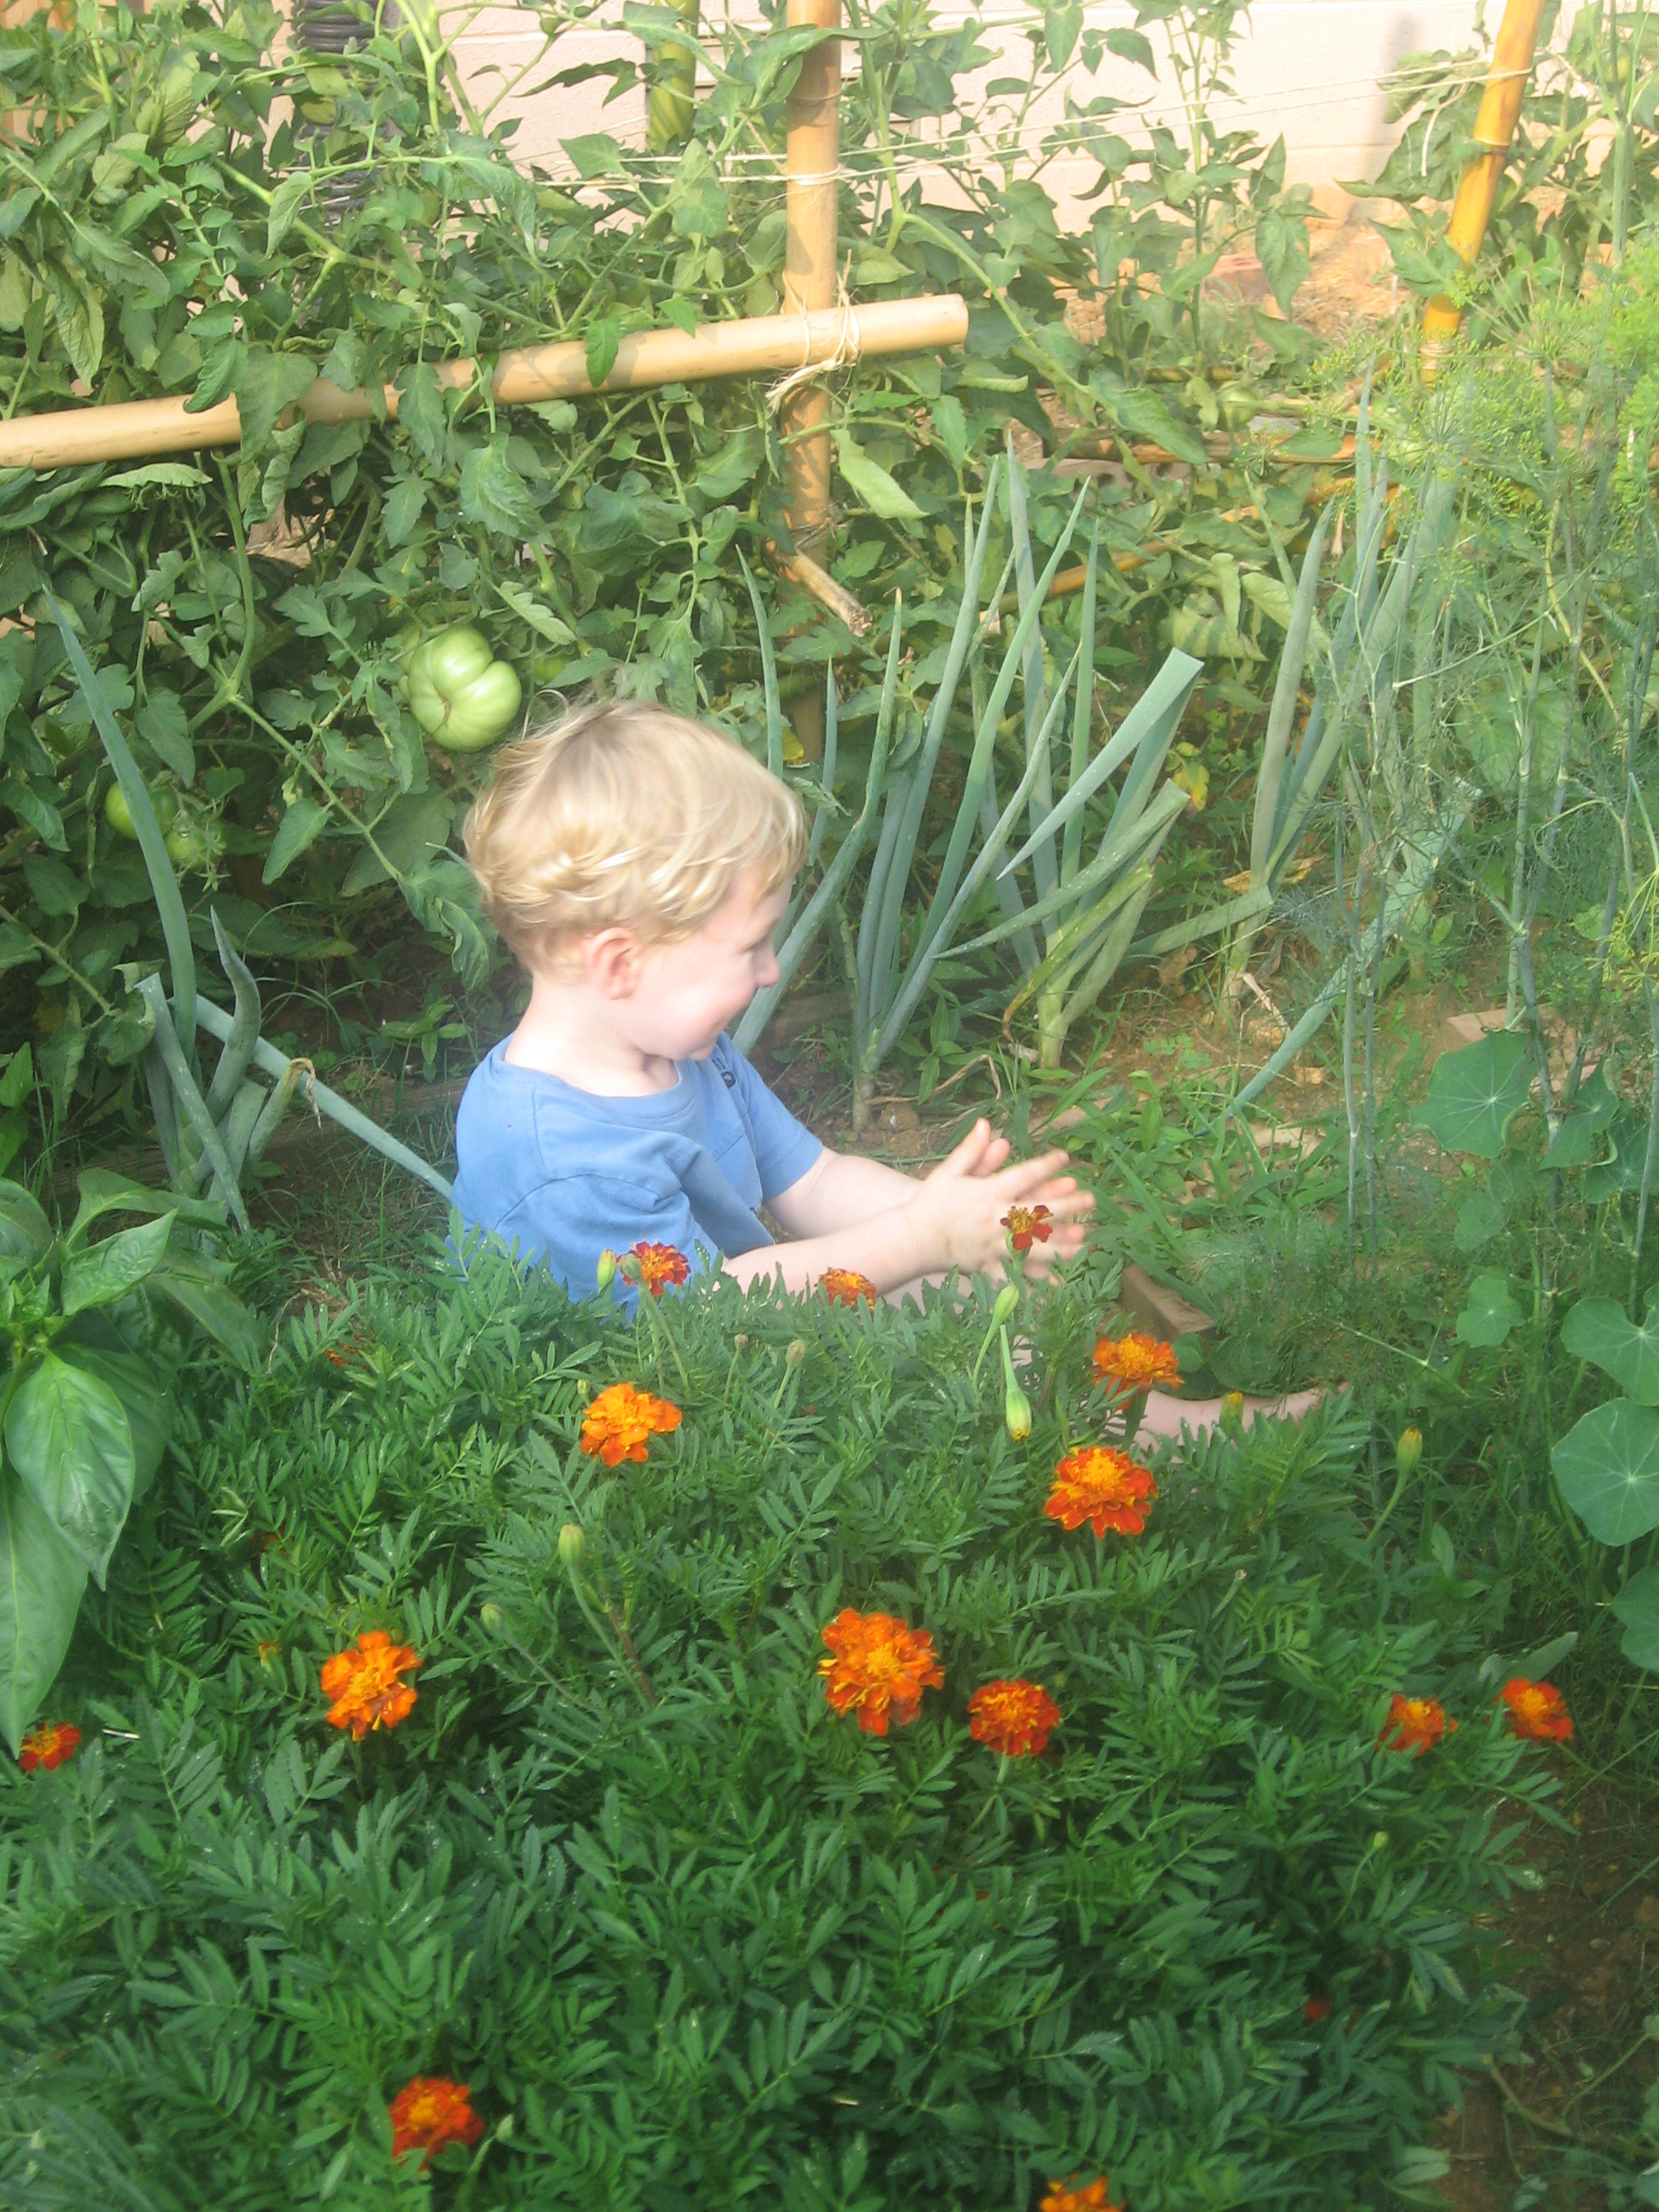 My Son Enjoying The Garden In The Blissful Days Of His Youth.